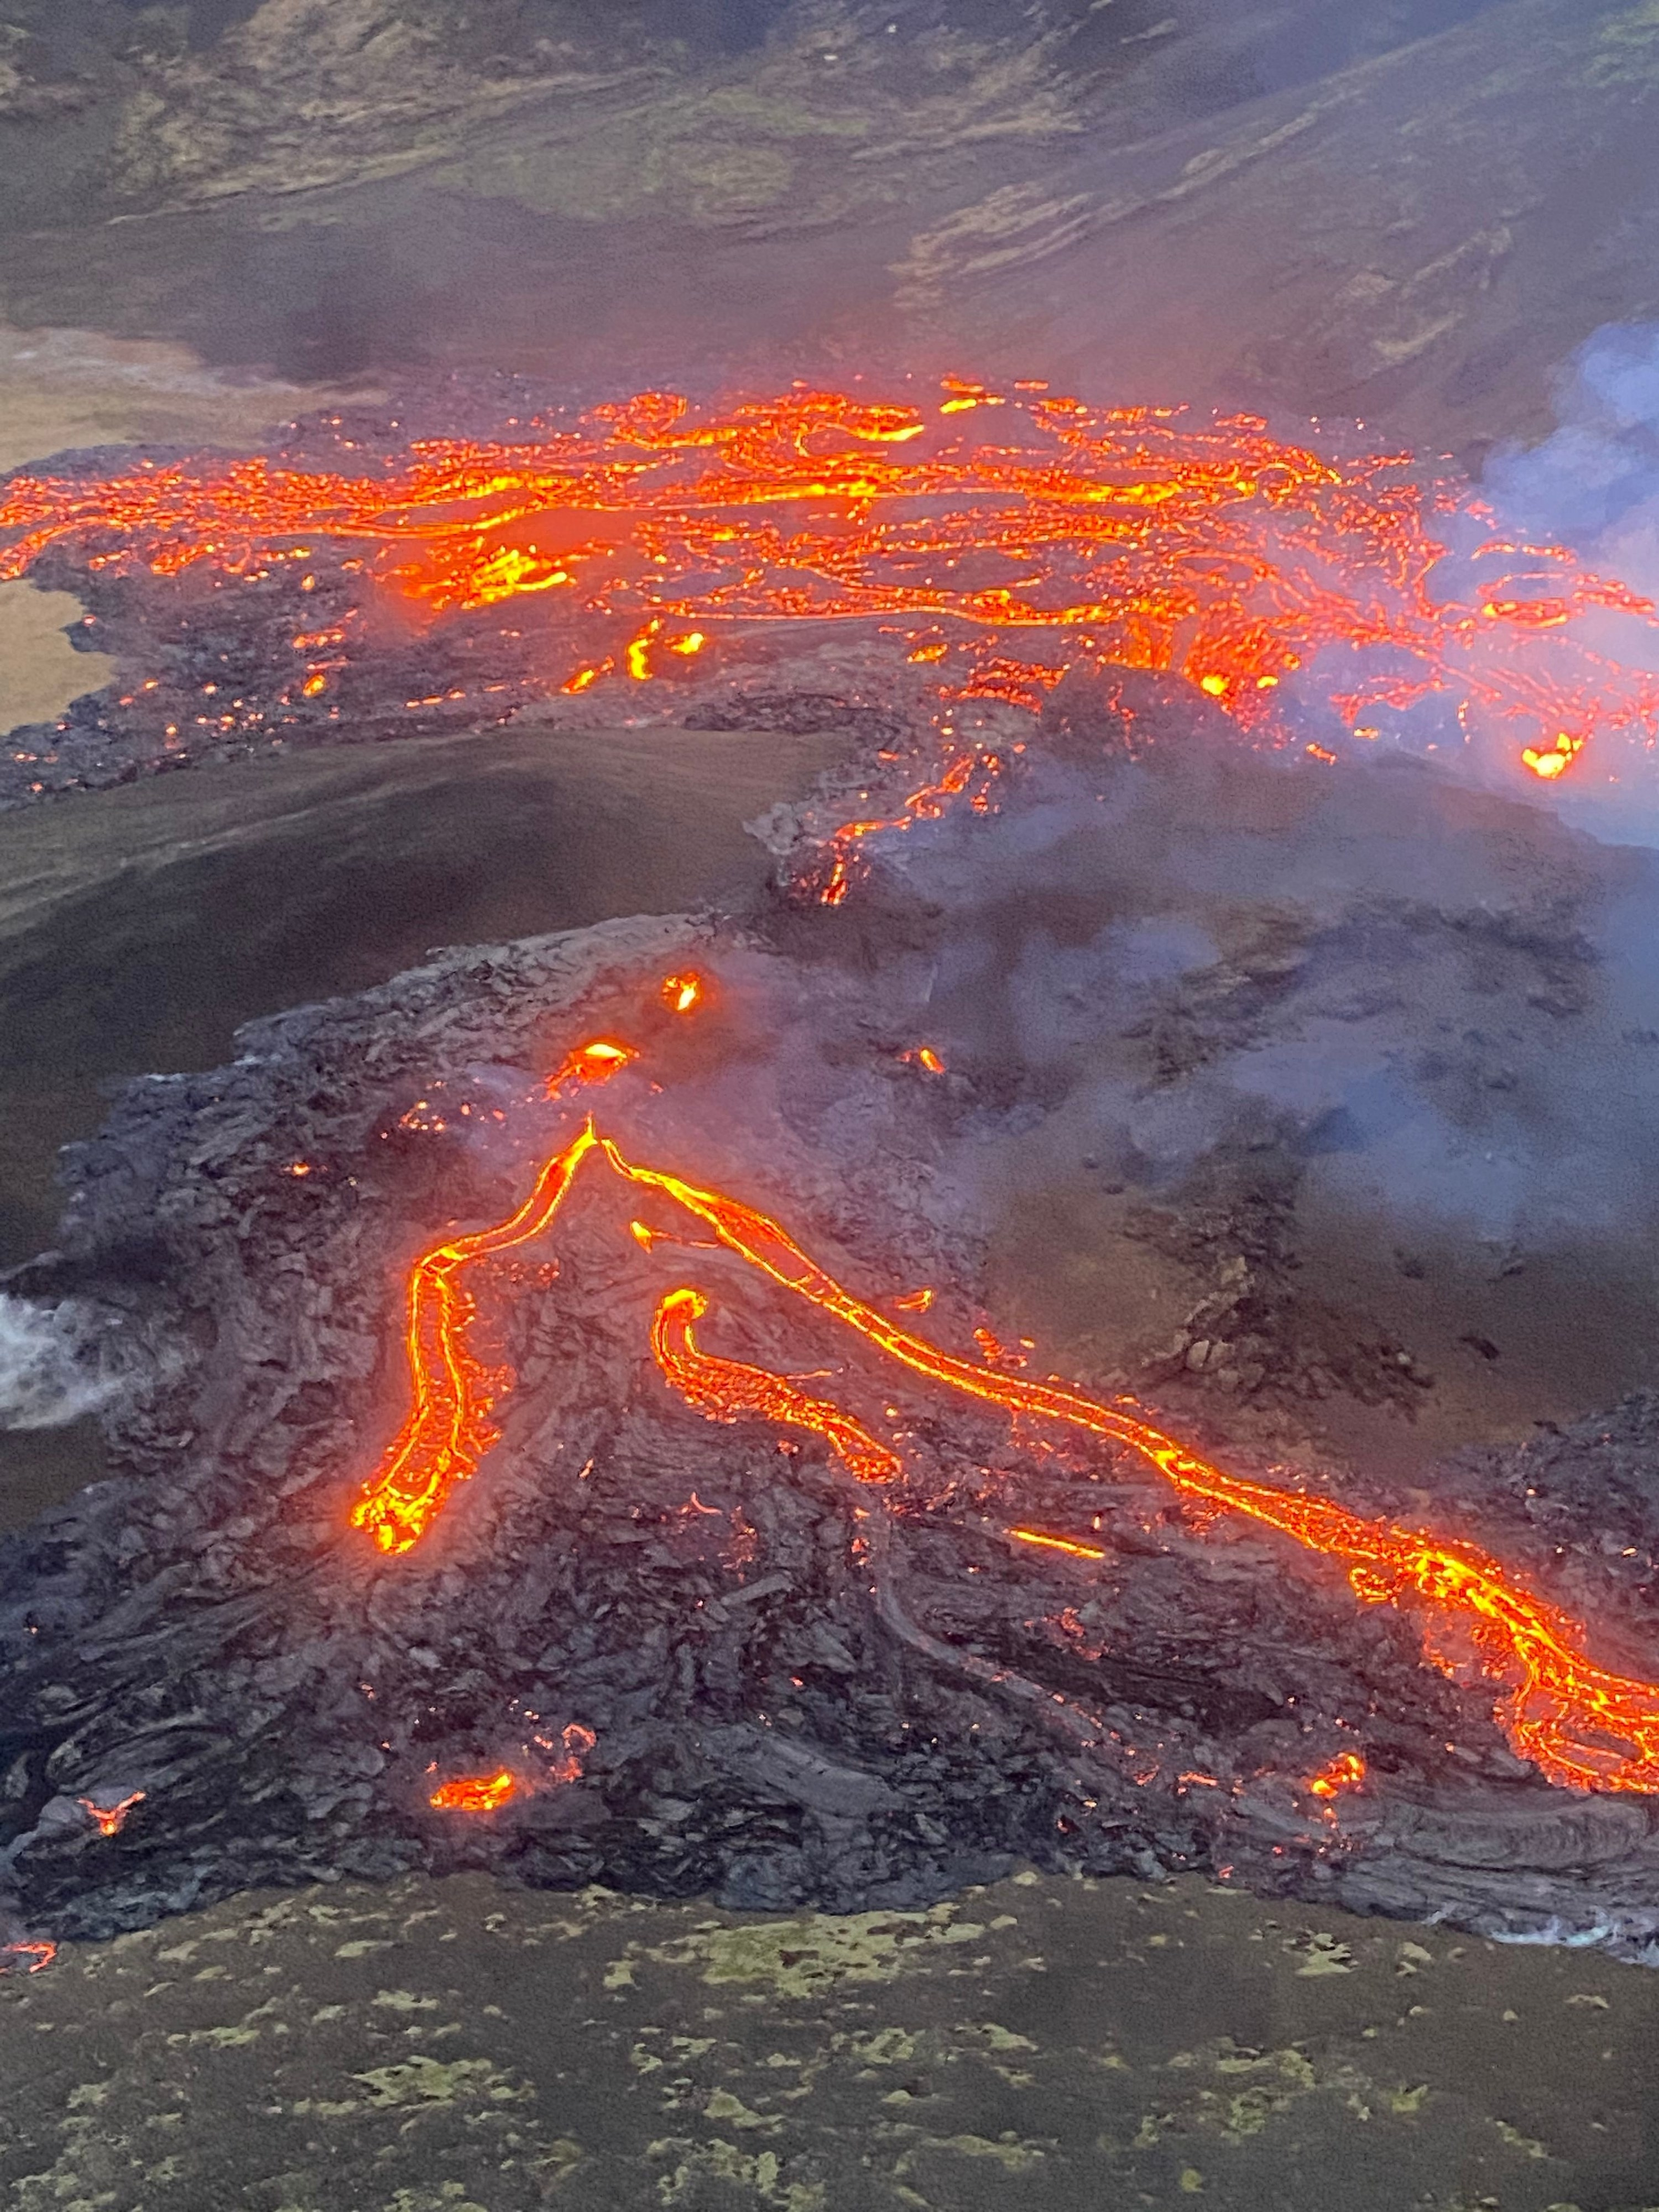 Overhead view of smoldering lava from volcano